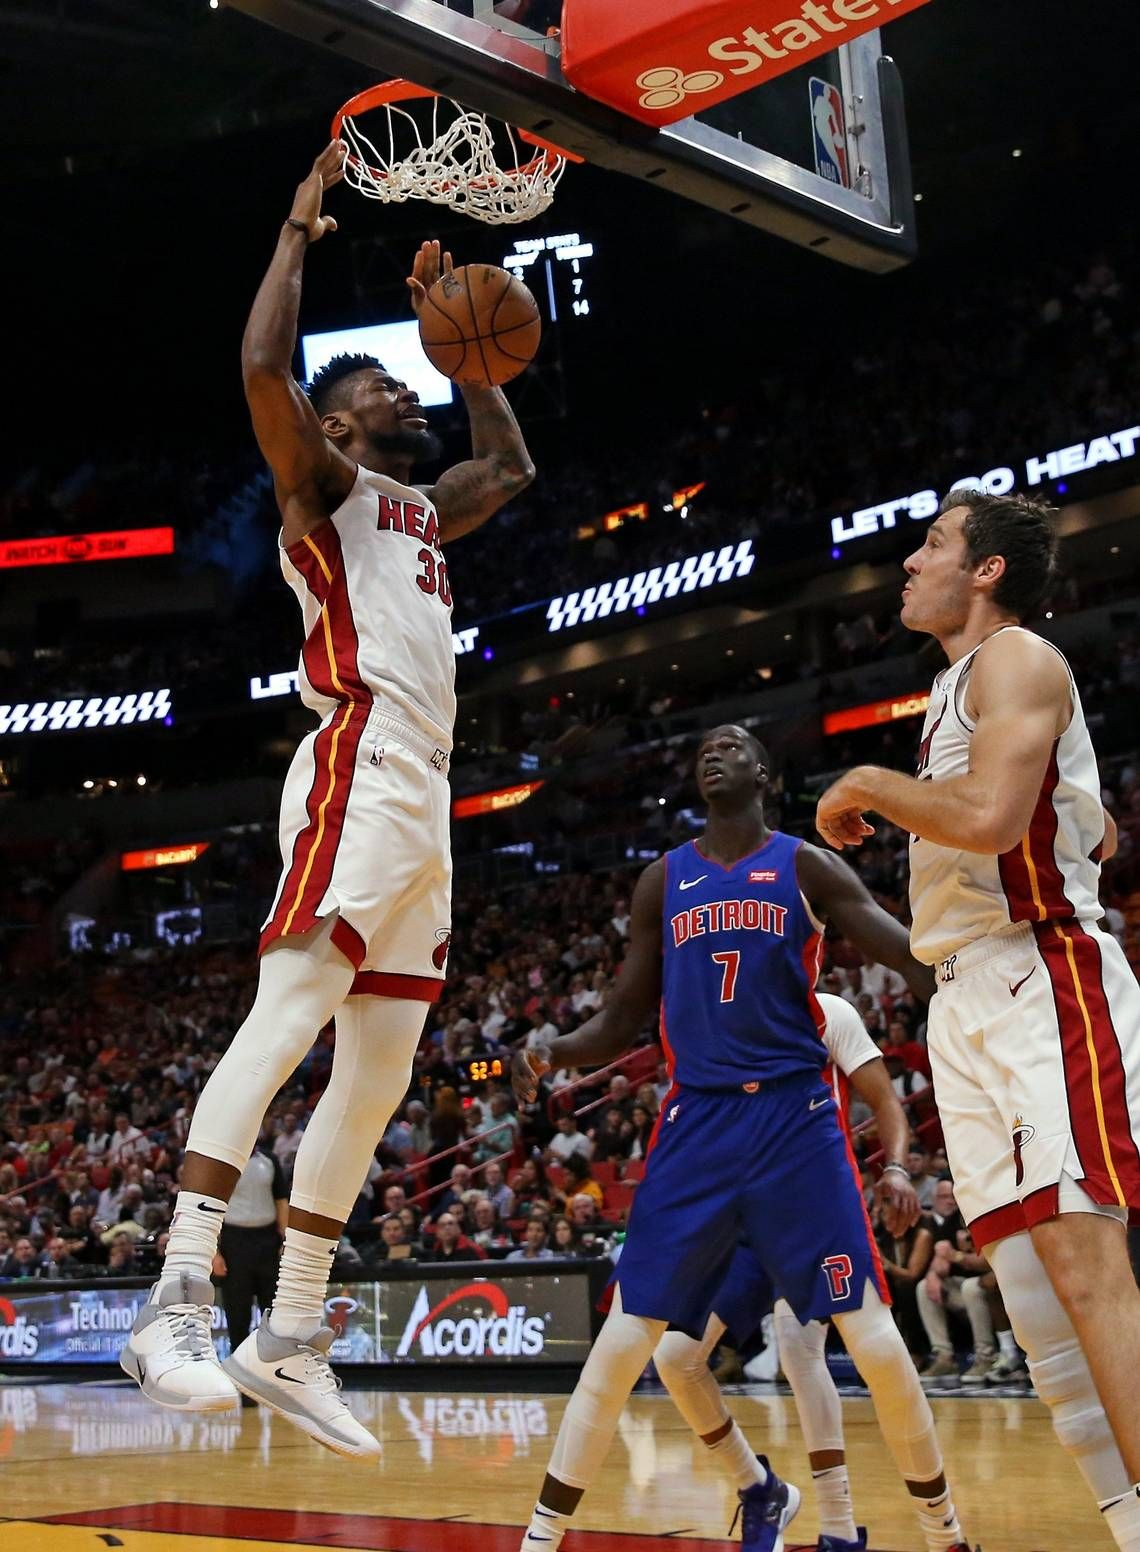 Chris Silva Practices With Heat For First Time In Regular In 2020 Nba Basketball Teams Sports Photos Most Popular Sports